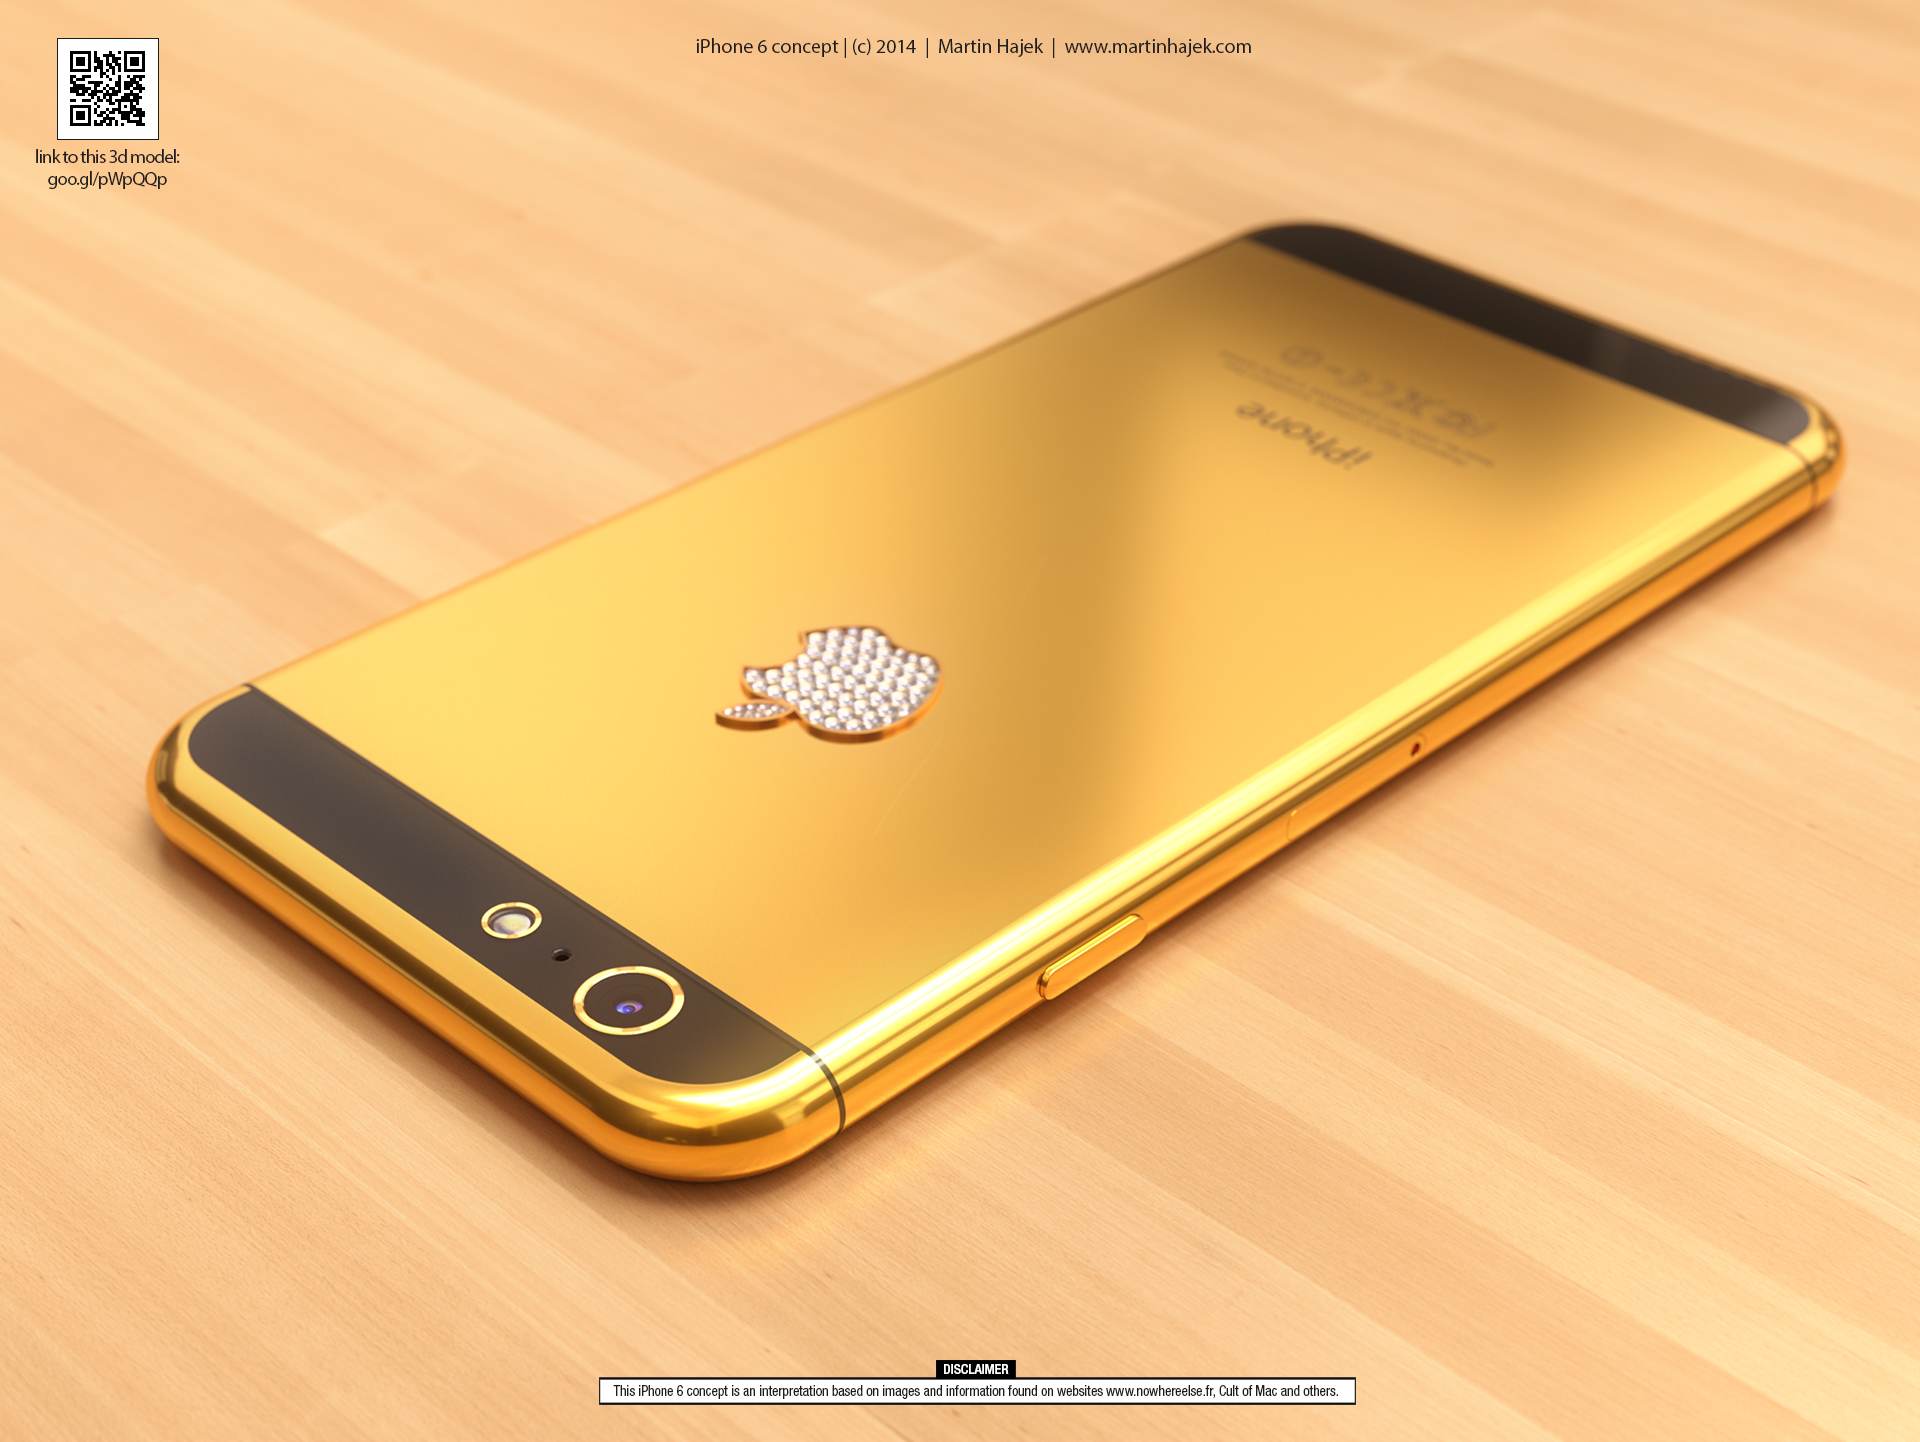 Luxury-iPhone-6-concept-design (6)